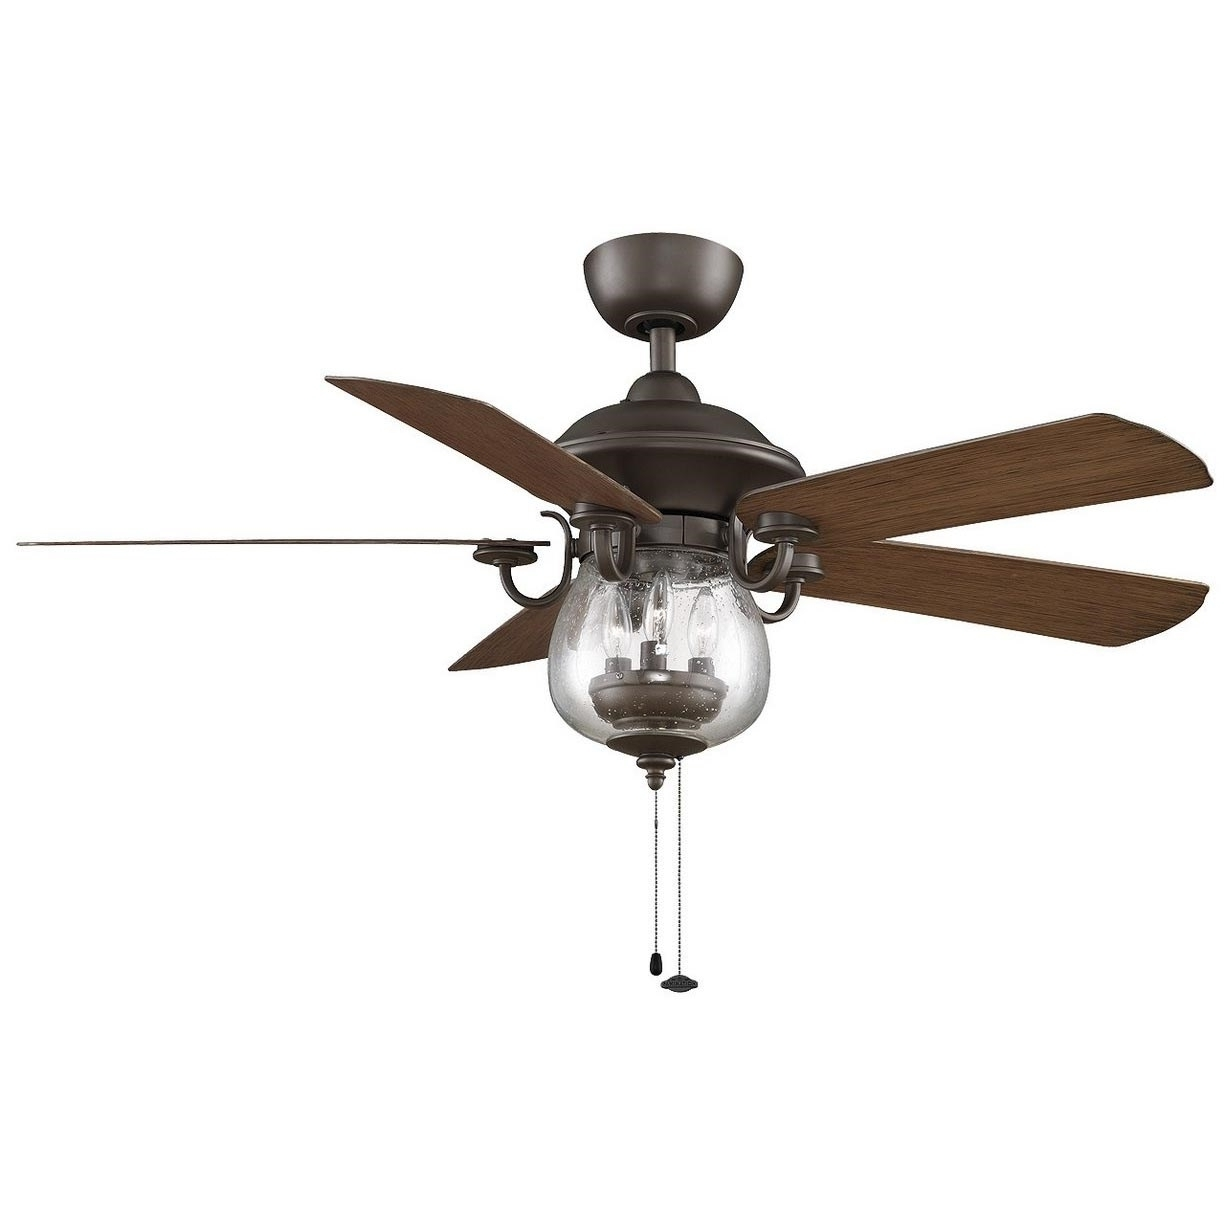 Kitchen Ceiling Fans With Bright Lights - Kitchen Ceiling Fans With Bright Lights - Kitchen Remodel, Cabinet